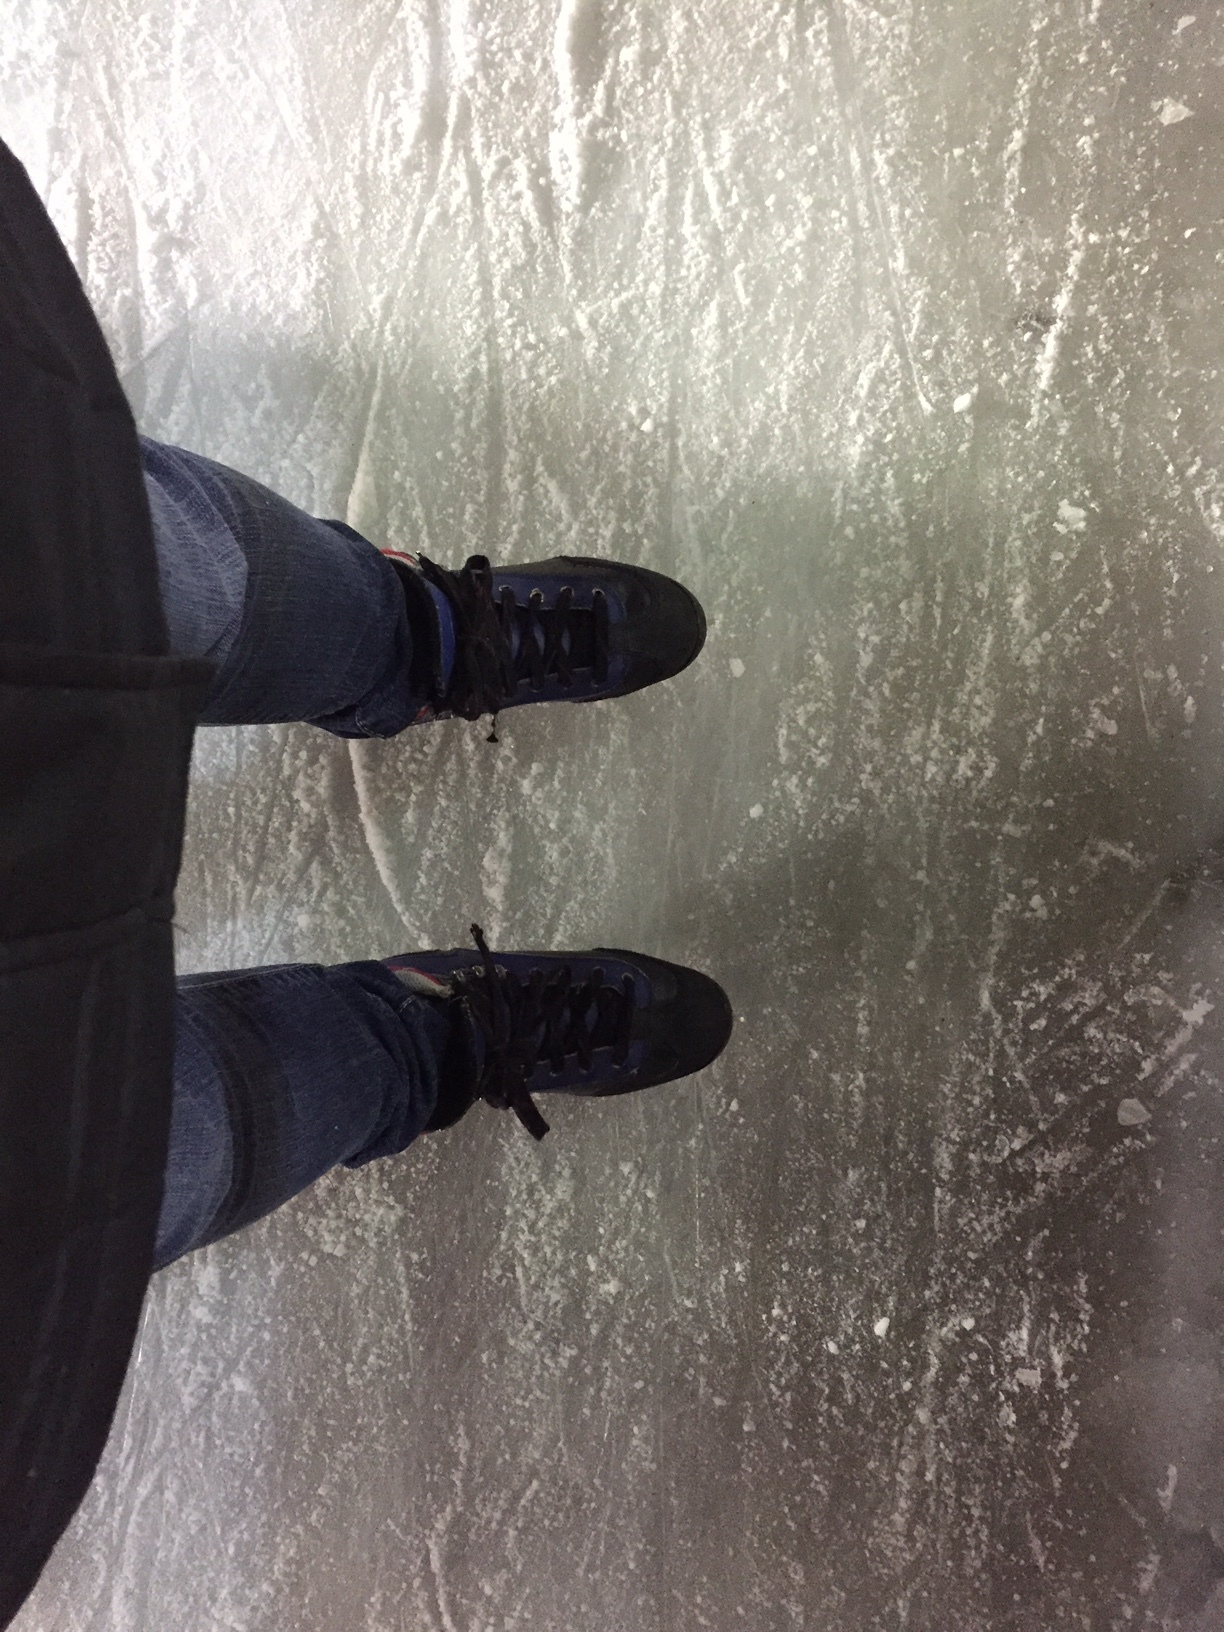 A fun way to enjoy the cold weather is to get on the ice and try out ice skating.